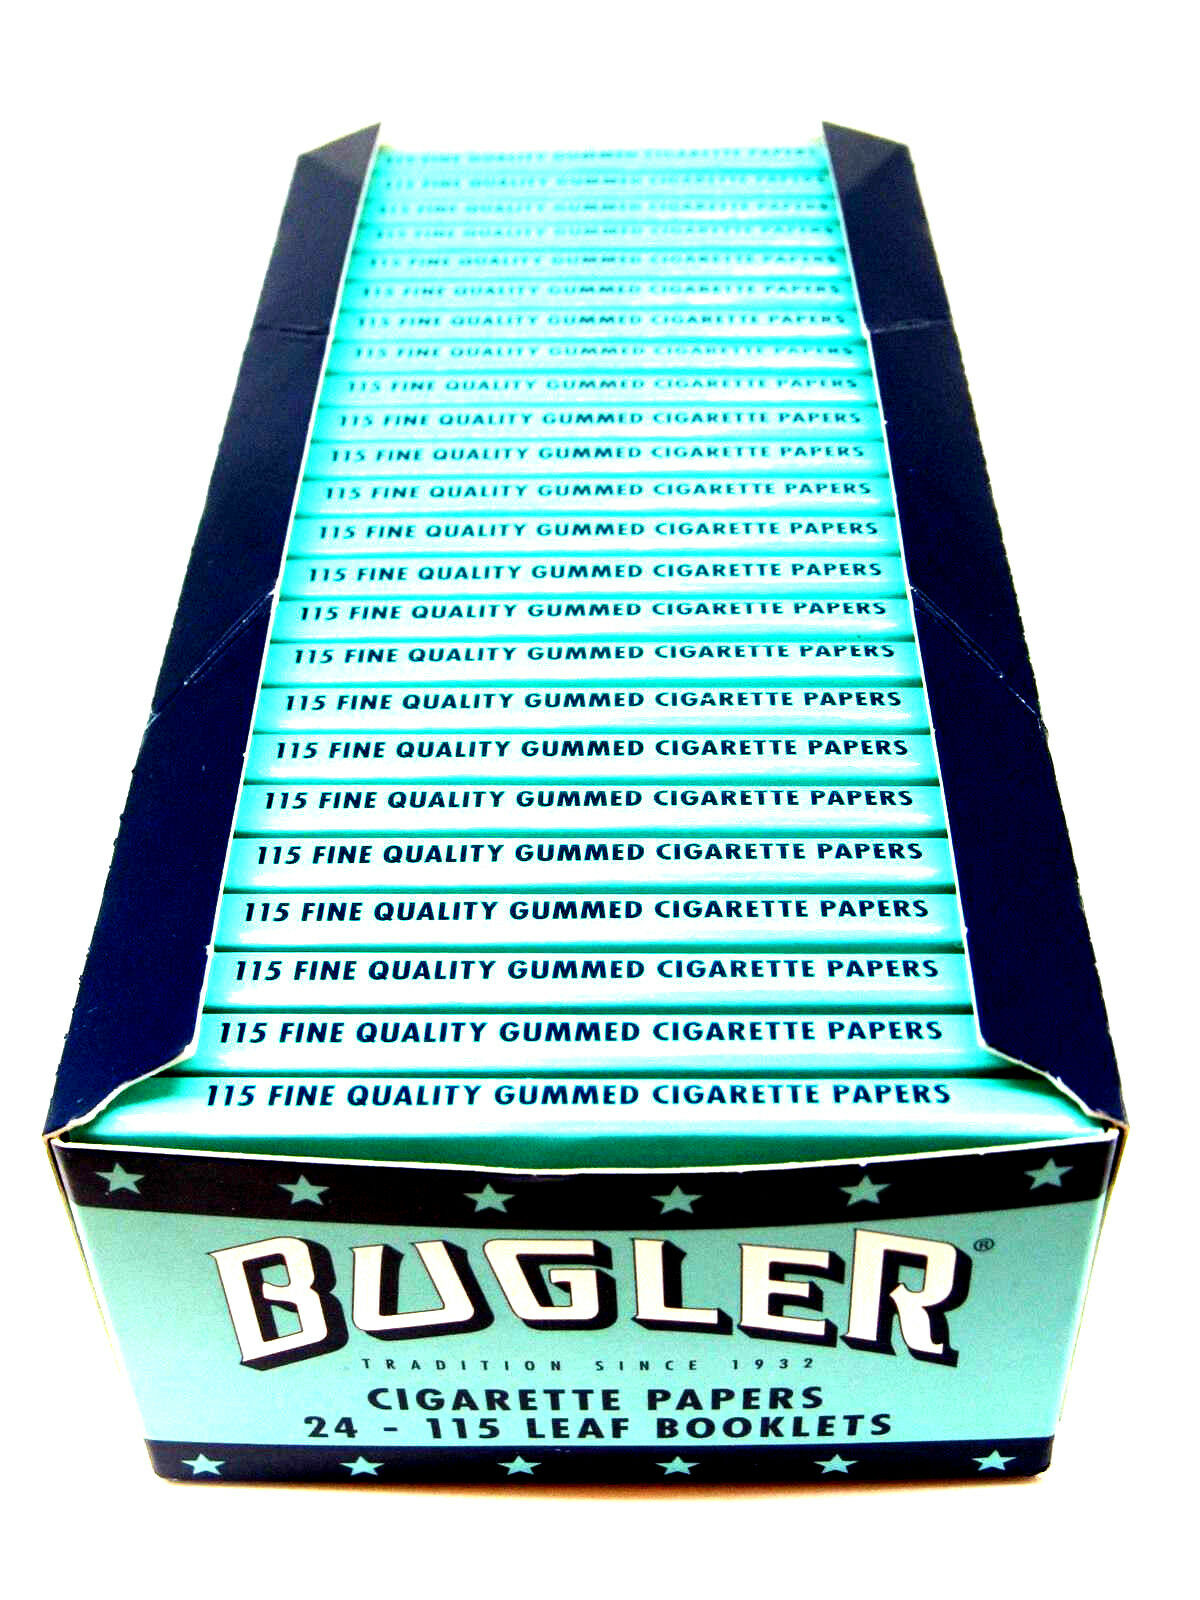 Bugler Rolling Papers 24 Packs Booklets Box- 115 Leaves Per Pack New RYO